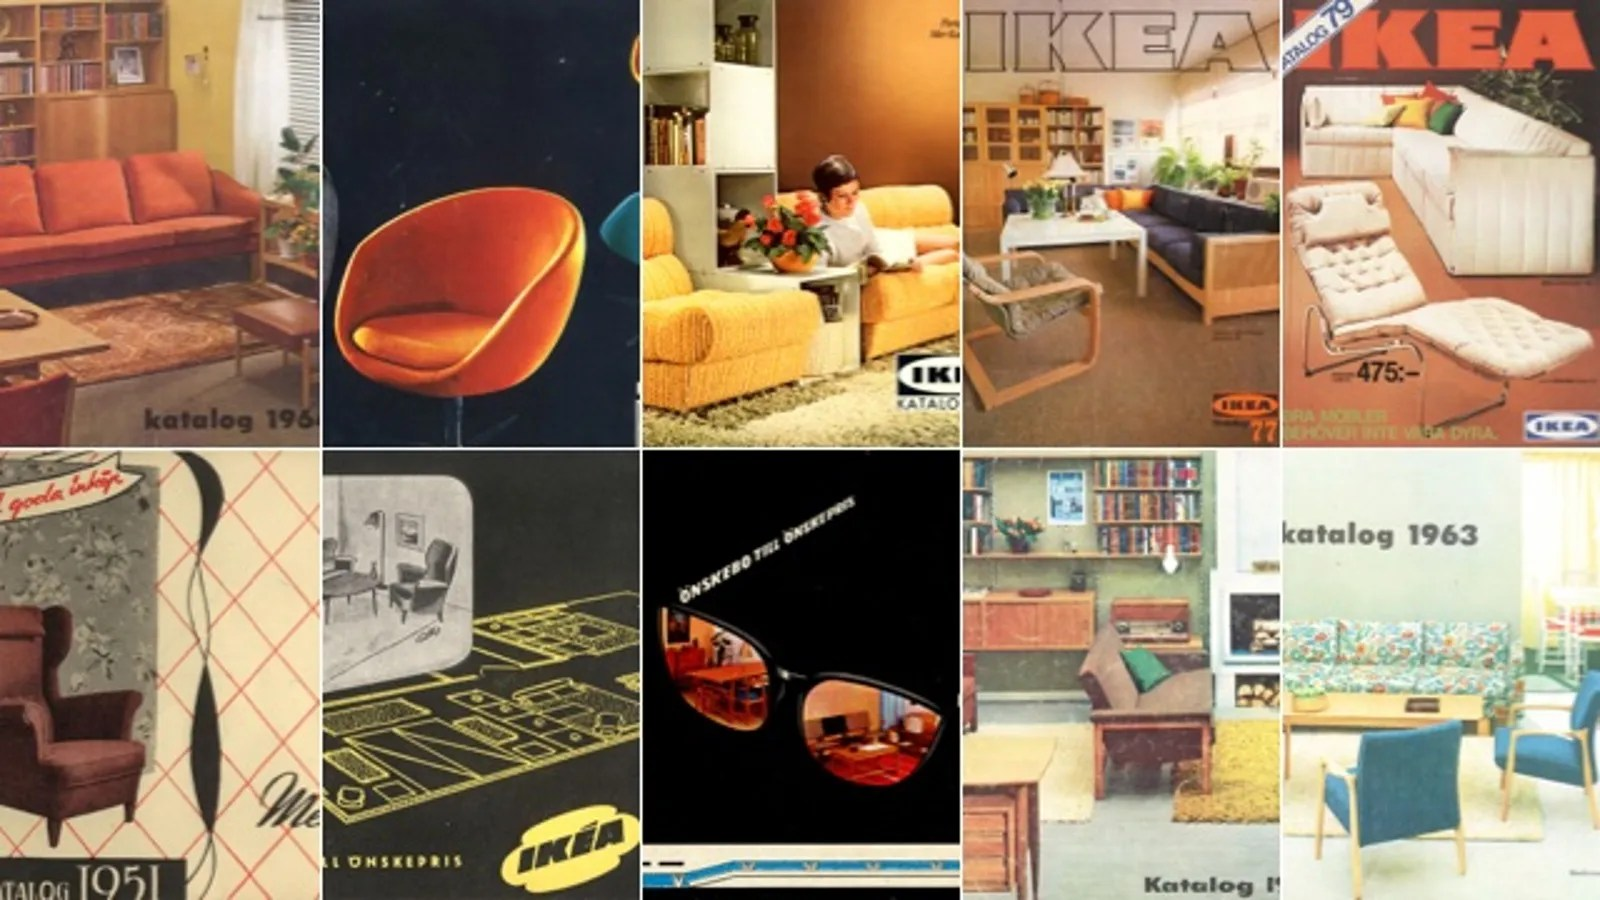 Australian Online Catalogues Every Ikea Catalog Cover Since 1951